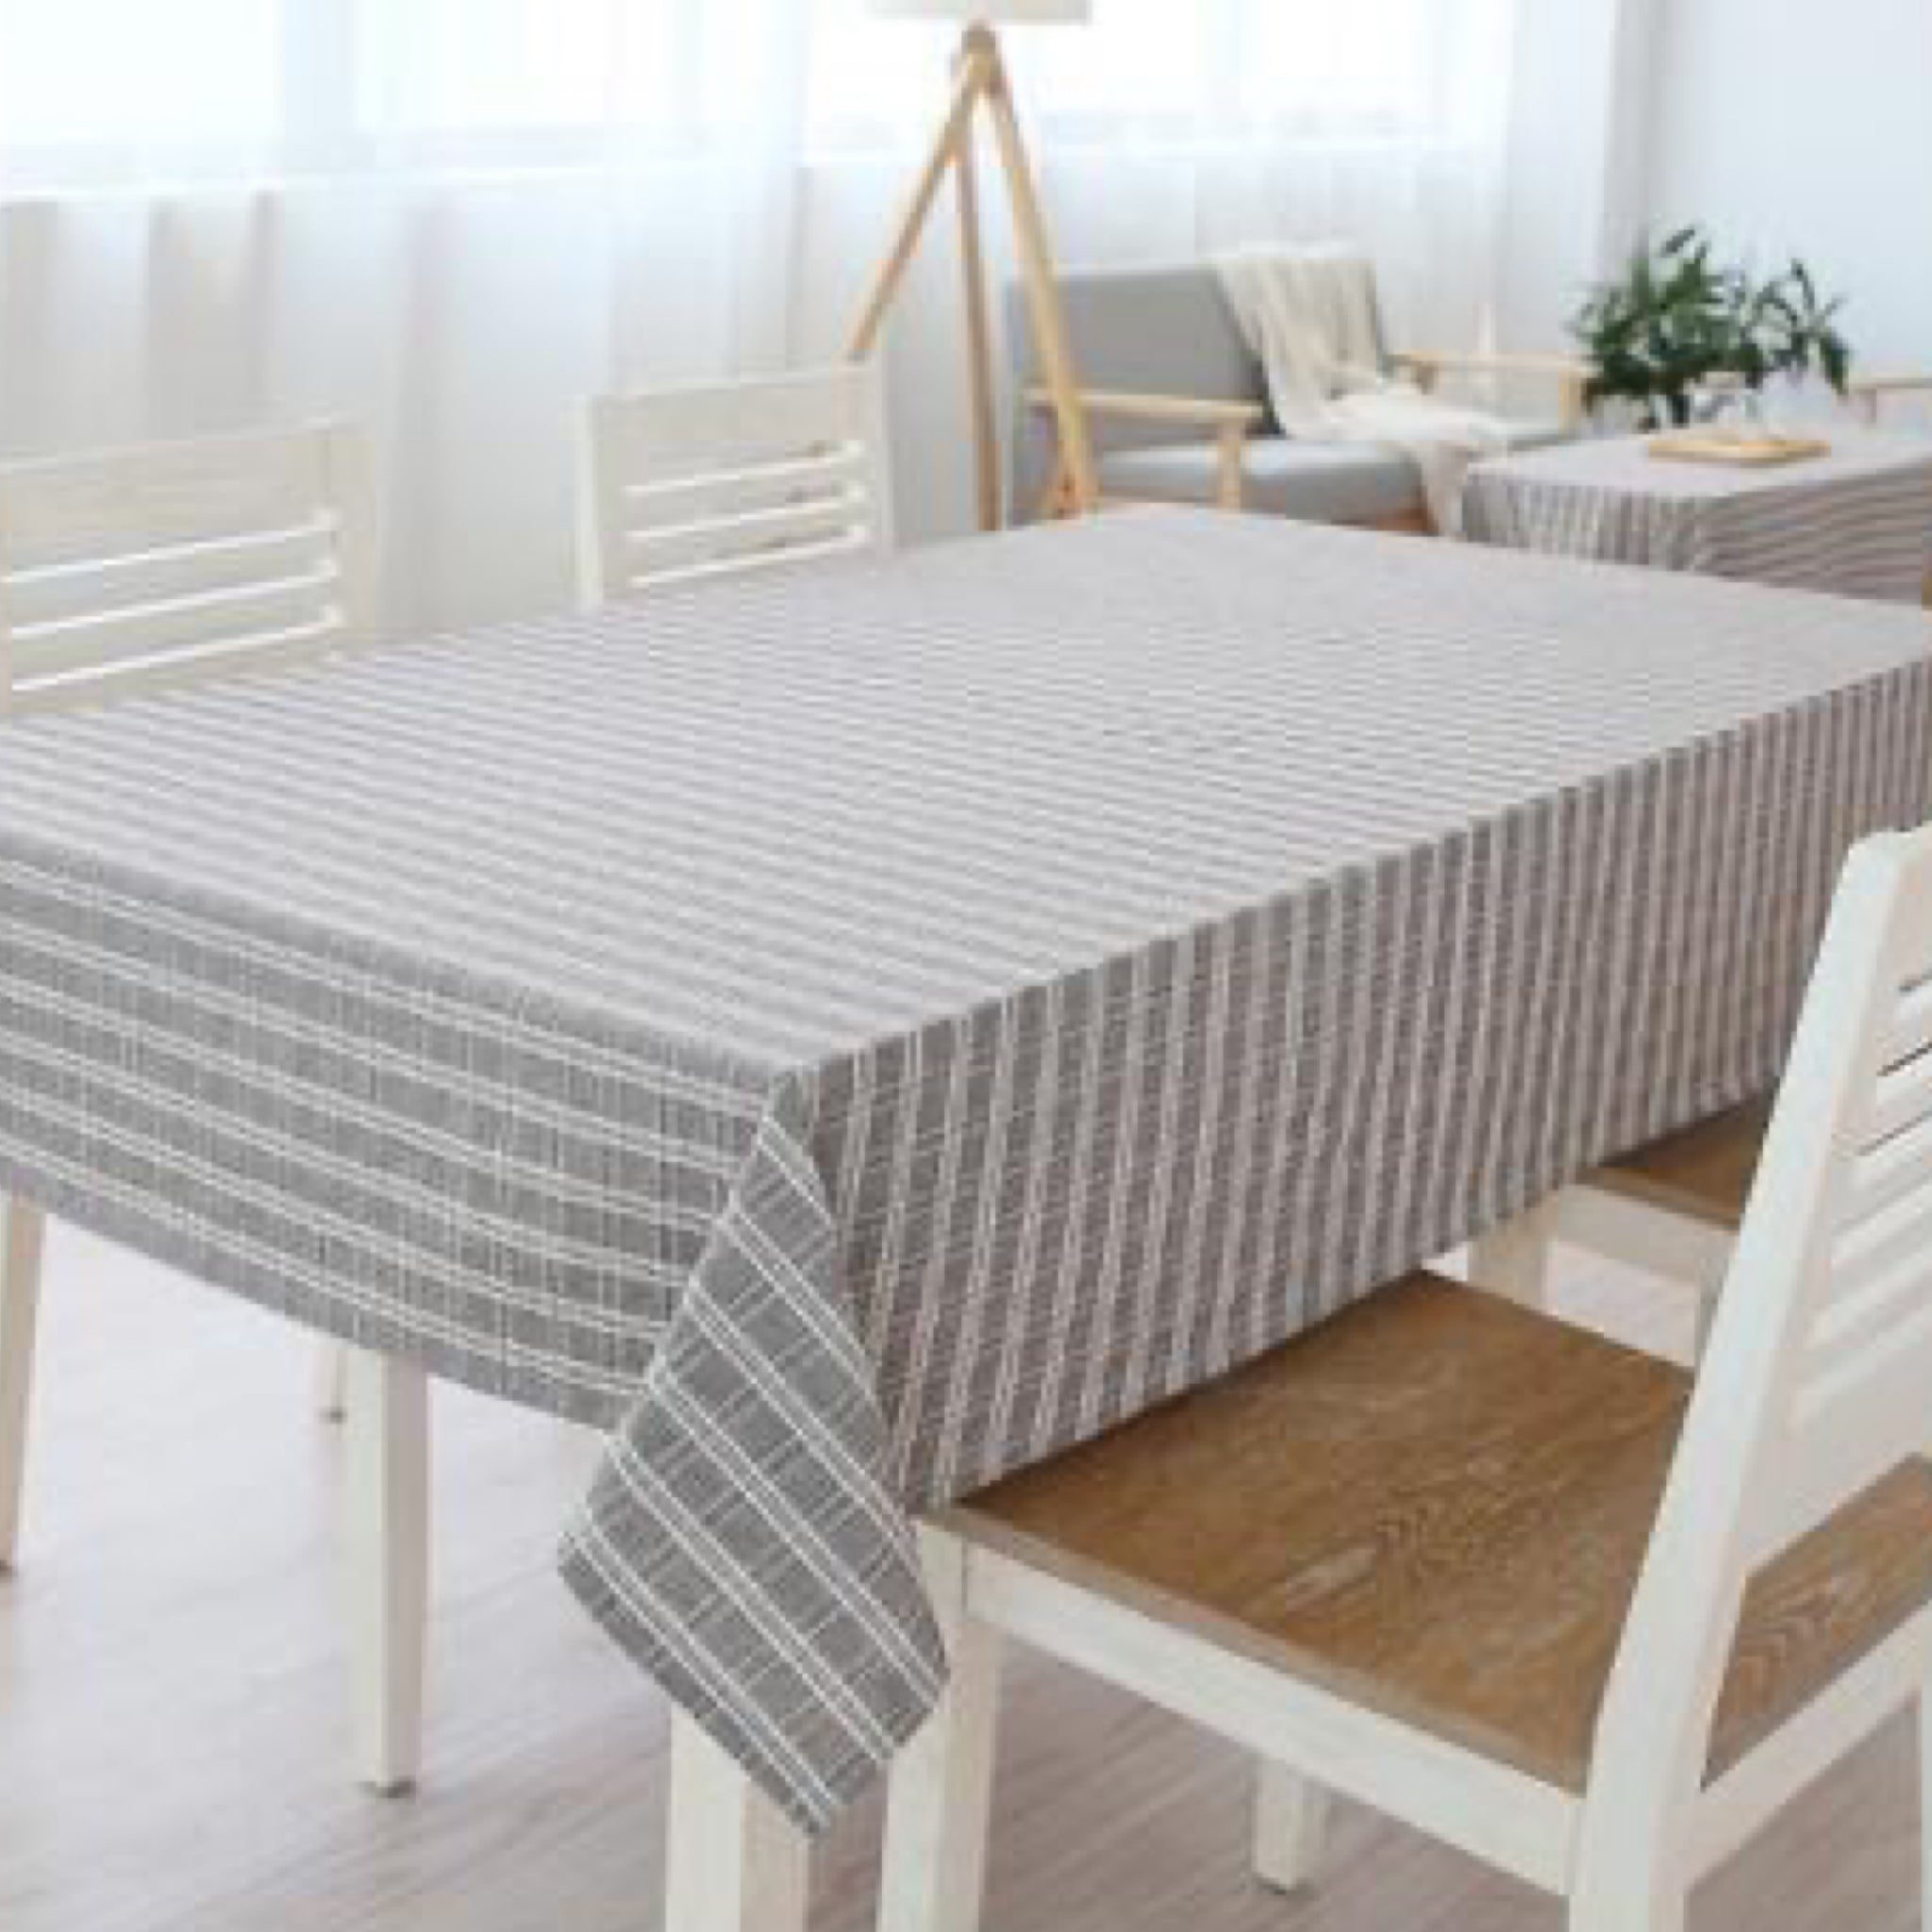 Japanese Brown Plaid Cotton Linen Tablecloth Trend